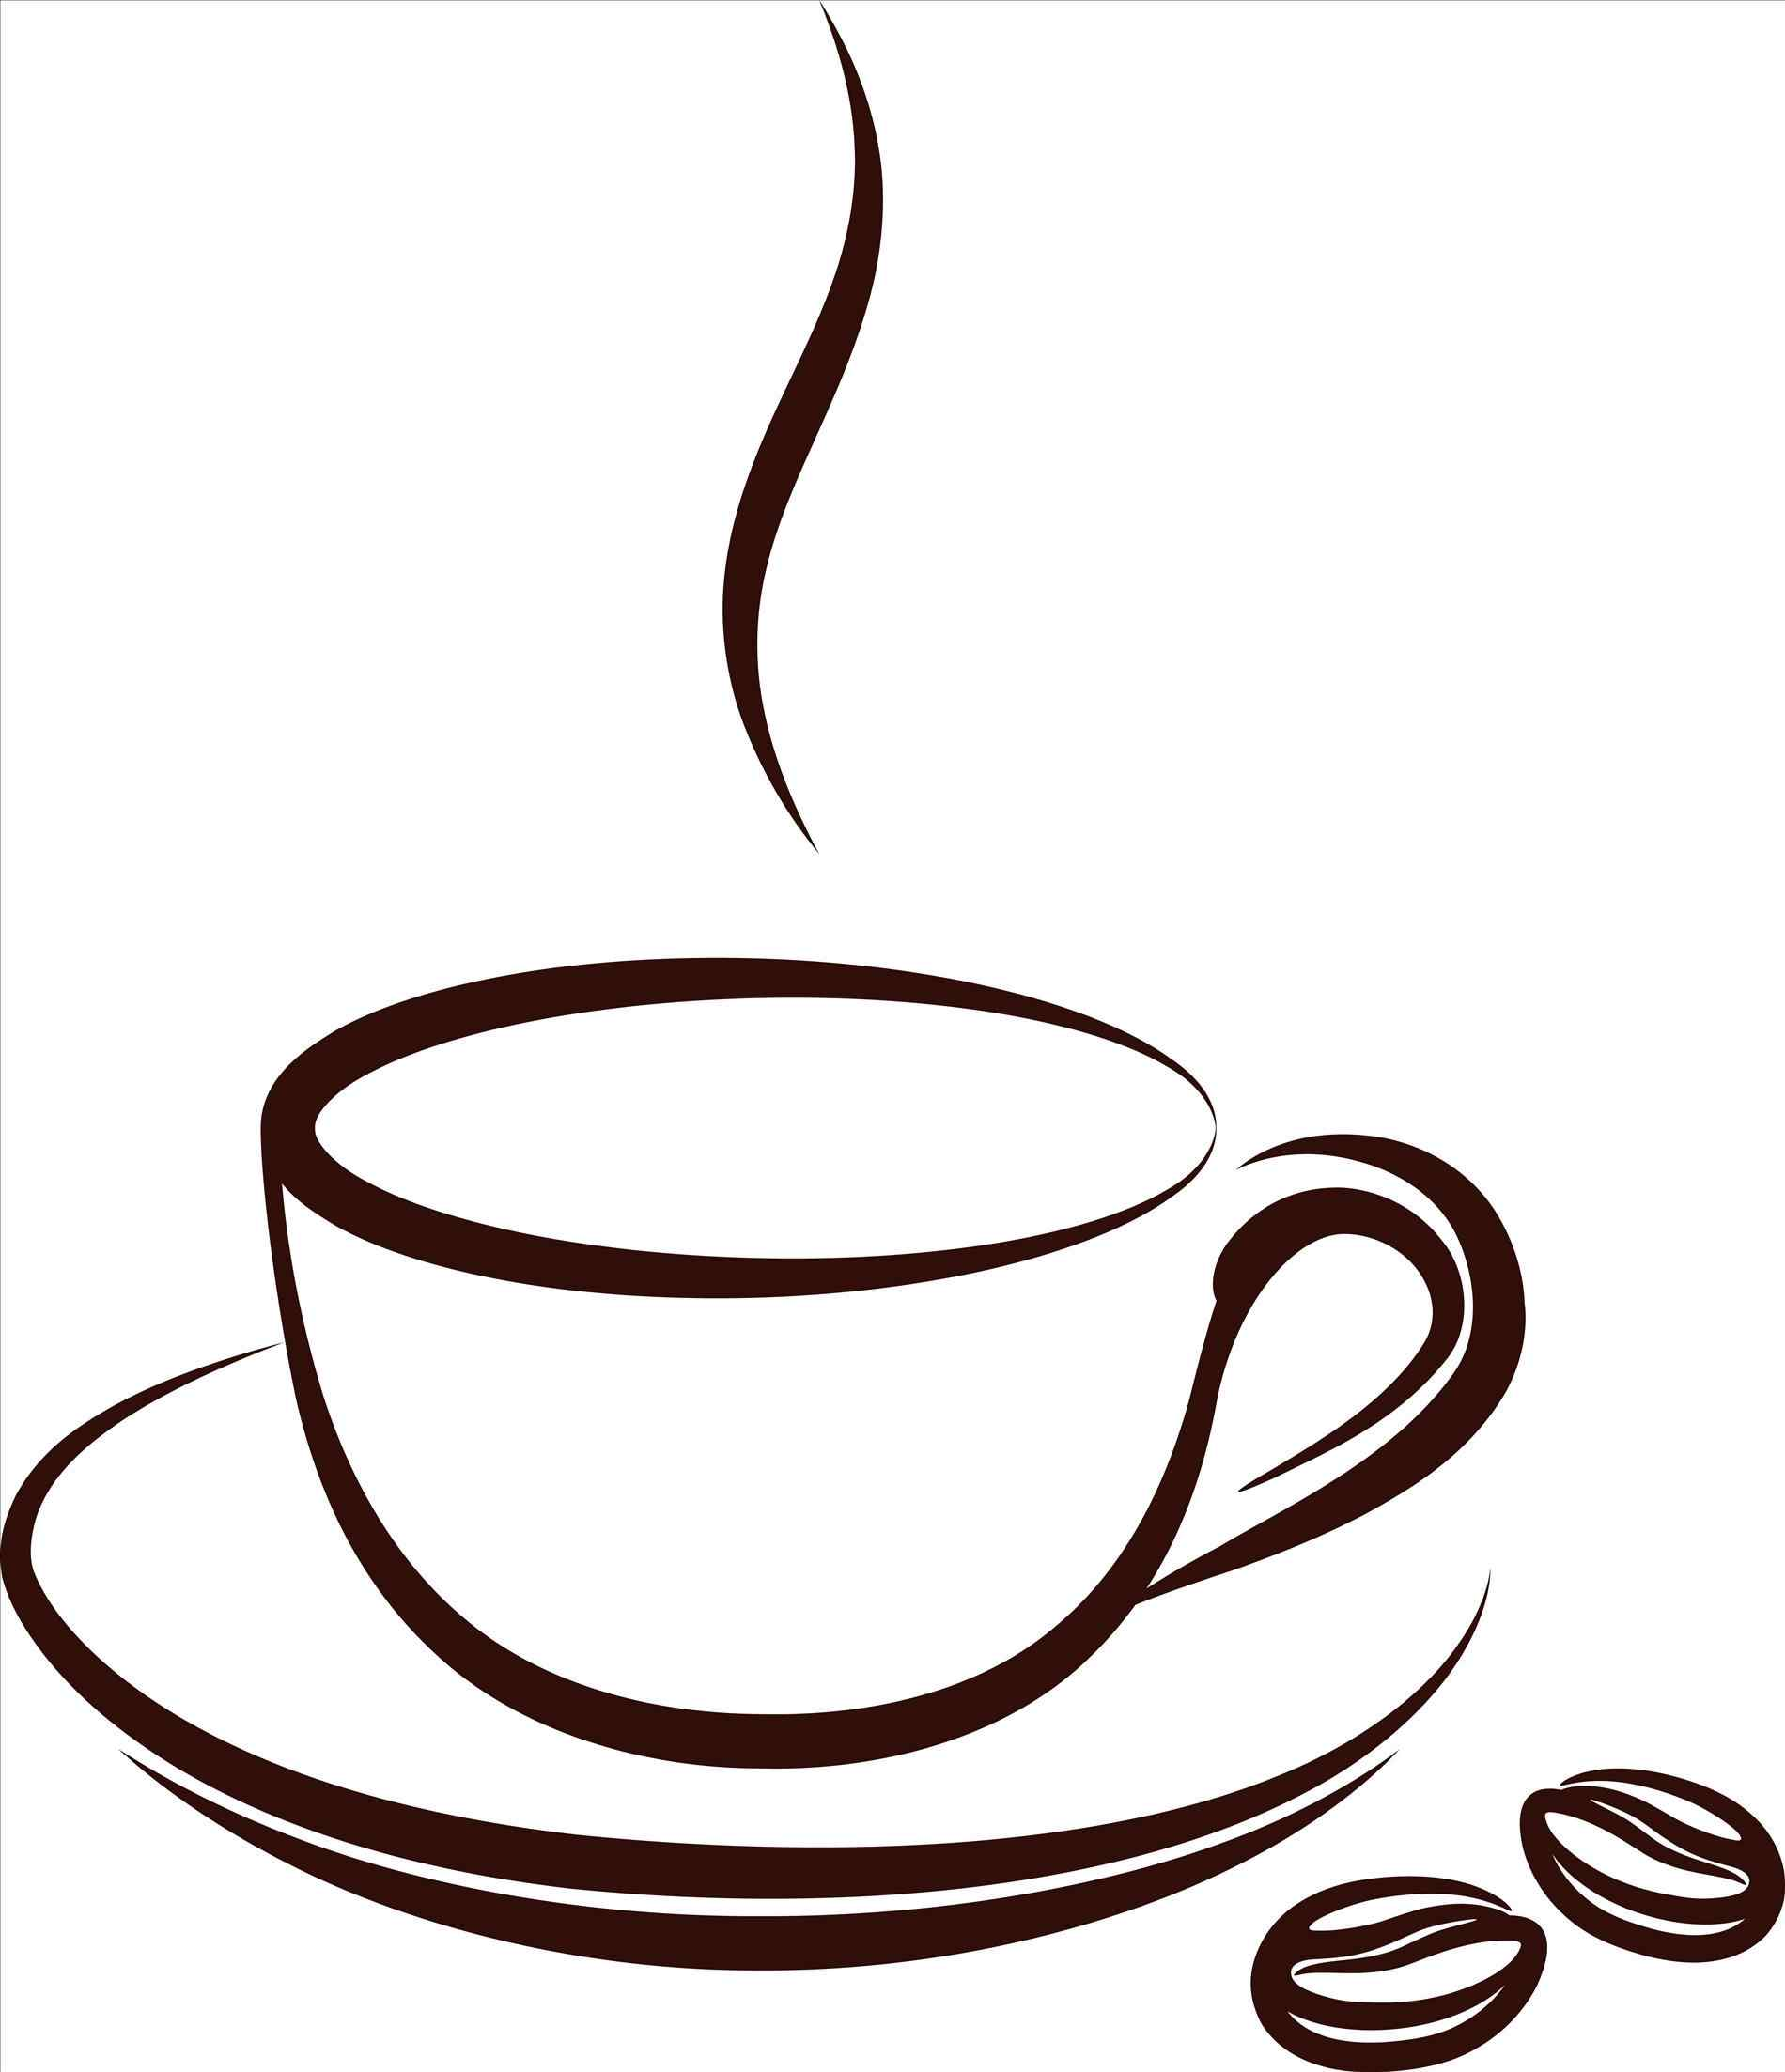 coffee clipart at getdrawings com free for personal use coffee rh getdrawings com free printable coffee cup clip art coffee cup border clip art free